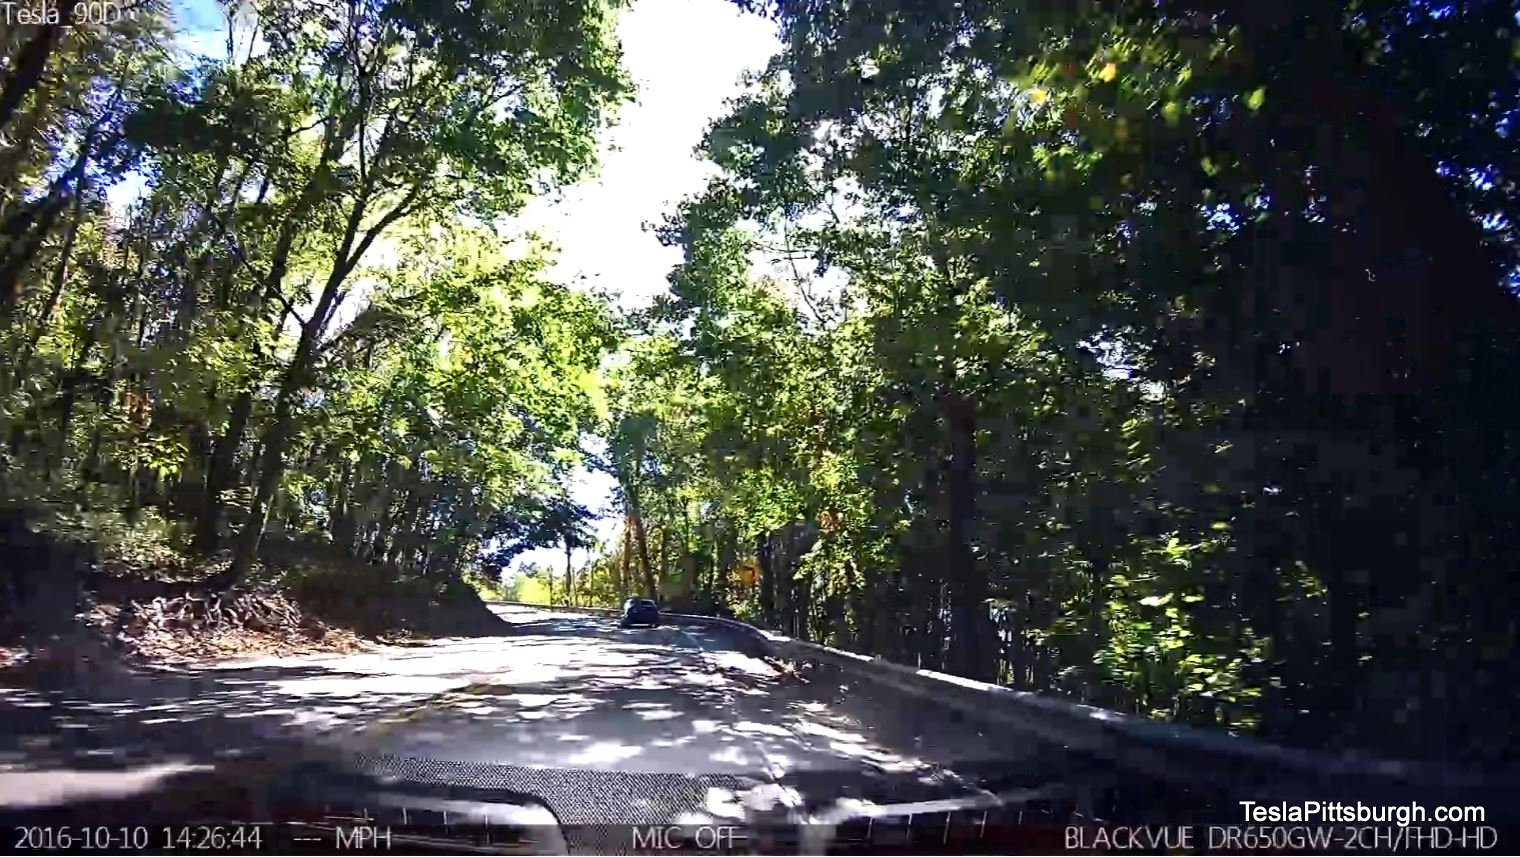 tesla-pittsburgh-dashcam-review-thinkware-f770-camera-daylight-cemetery-lane-front-blackvue